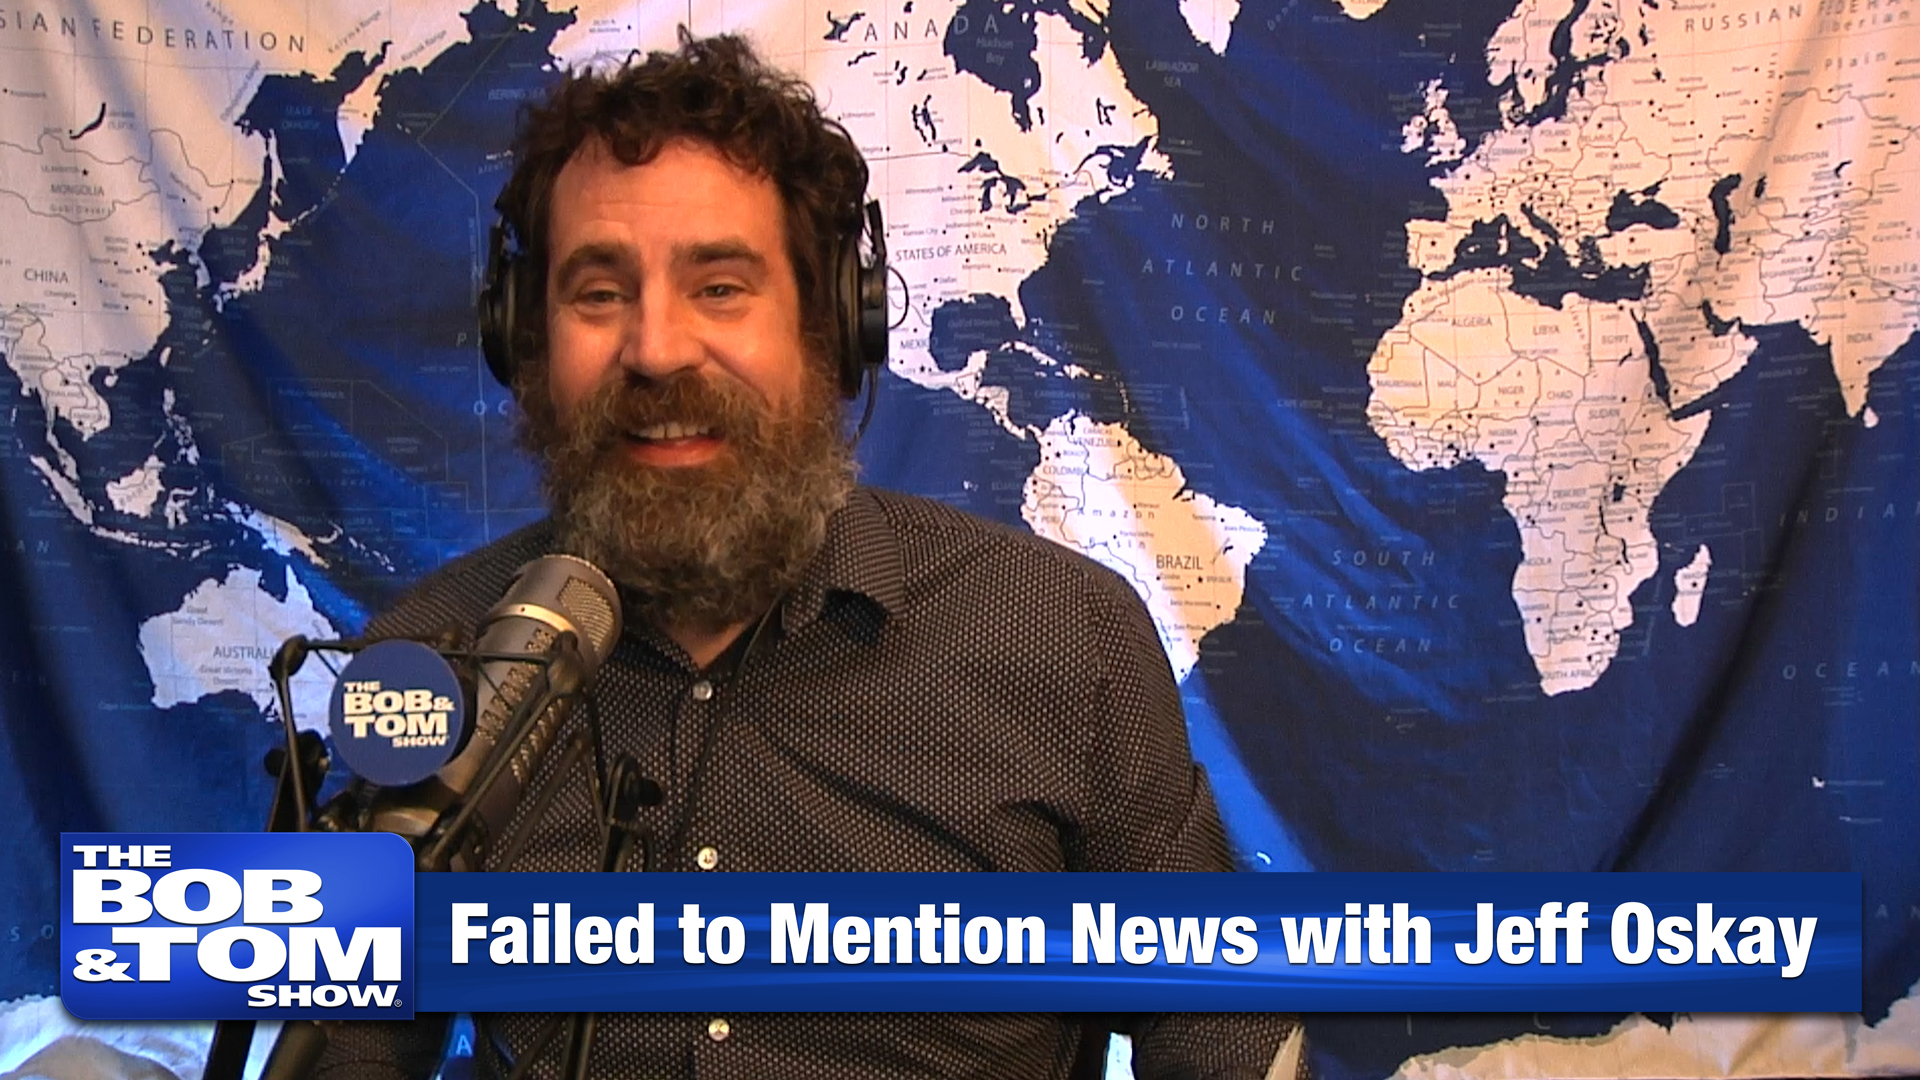 Failed to Mention News with Jeff Oskay